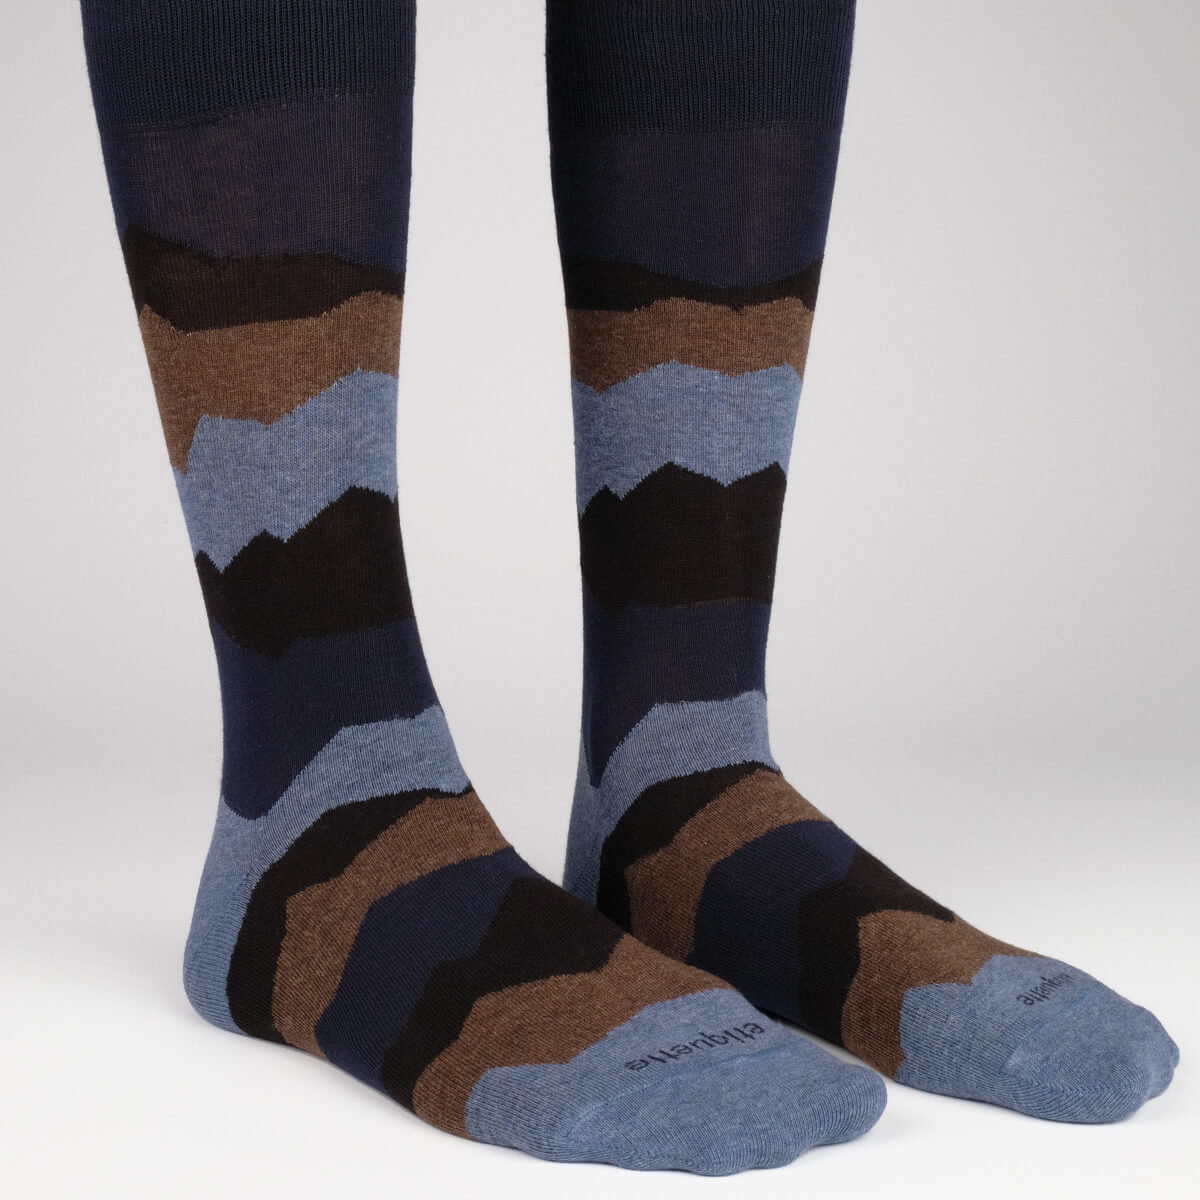 Mens Socks - Seismic Men's Socks - Dark Blue⎪Etiquette Clothiers